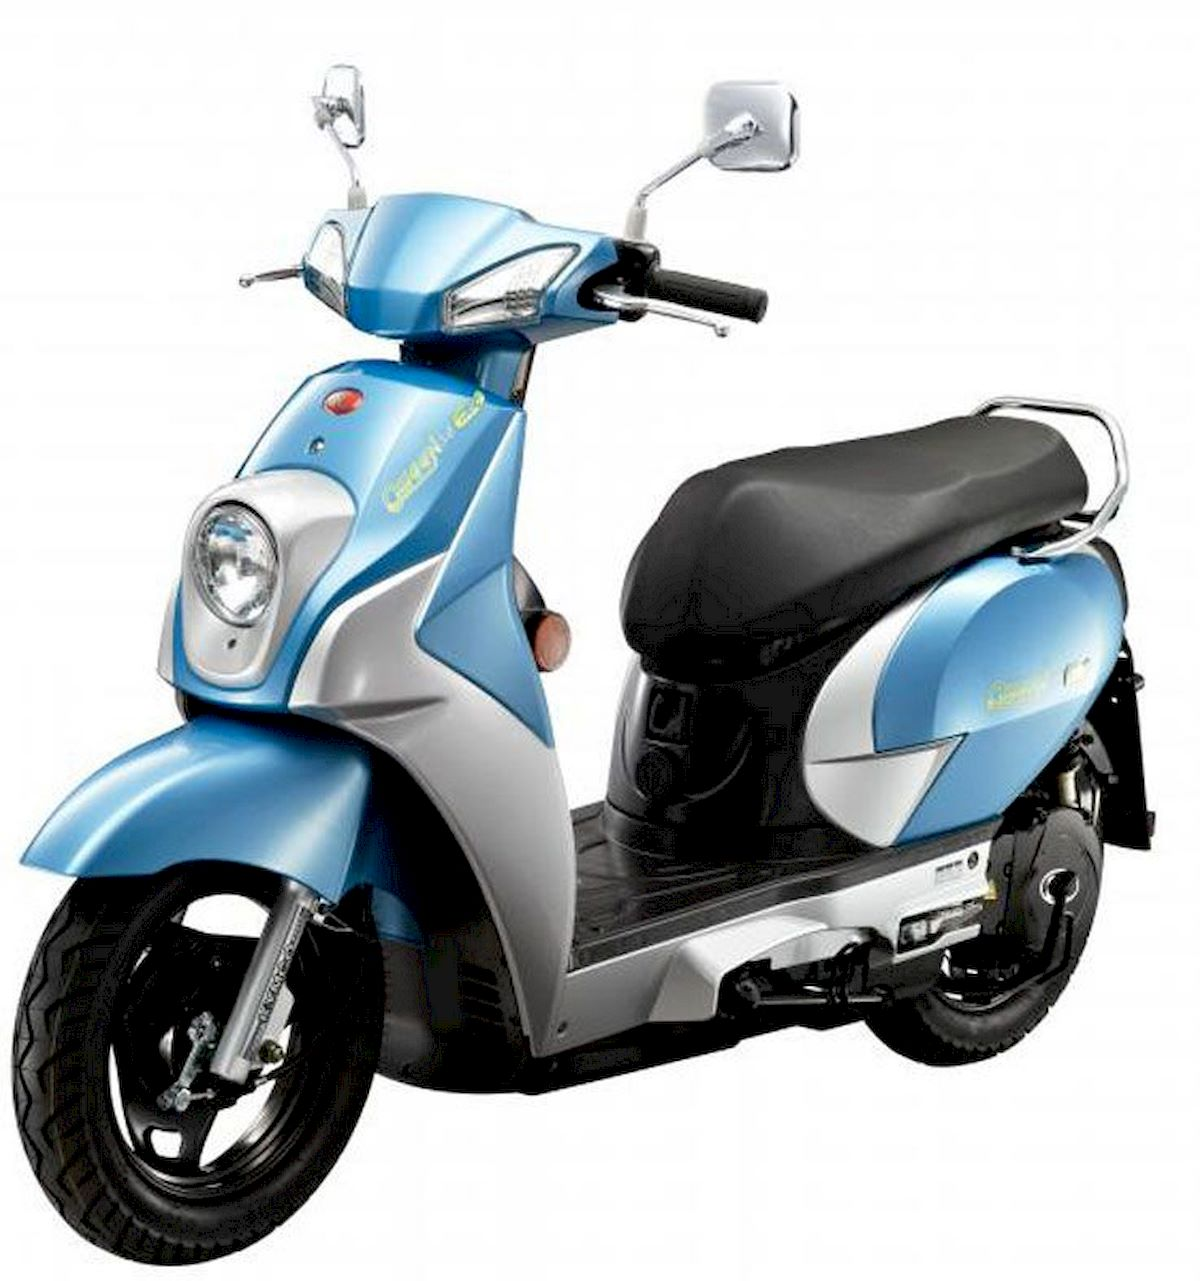 Image of KYMCO QUEEN